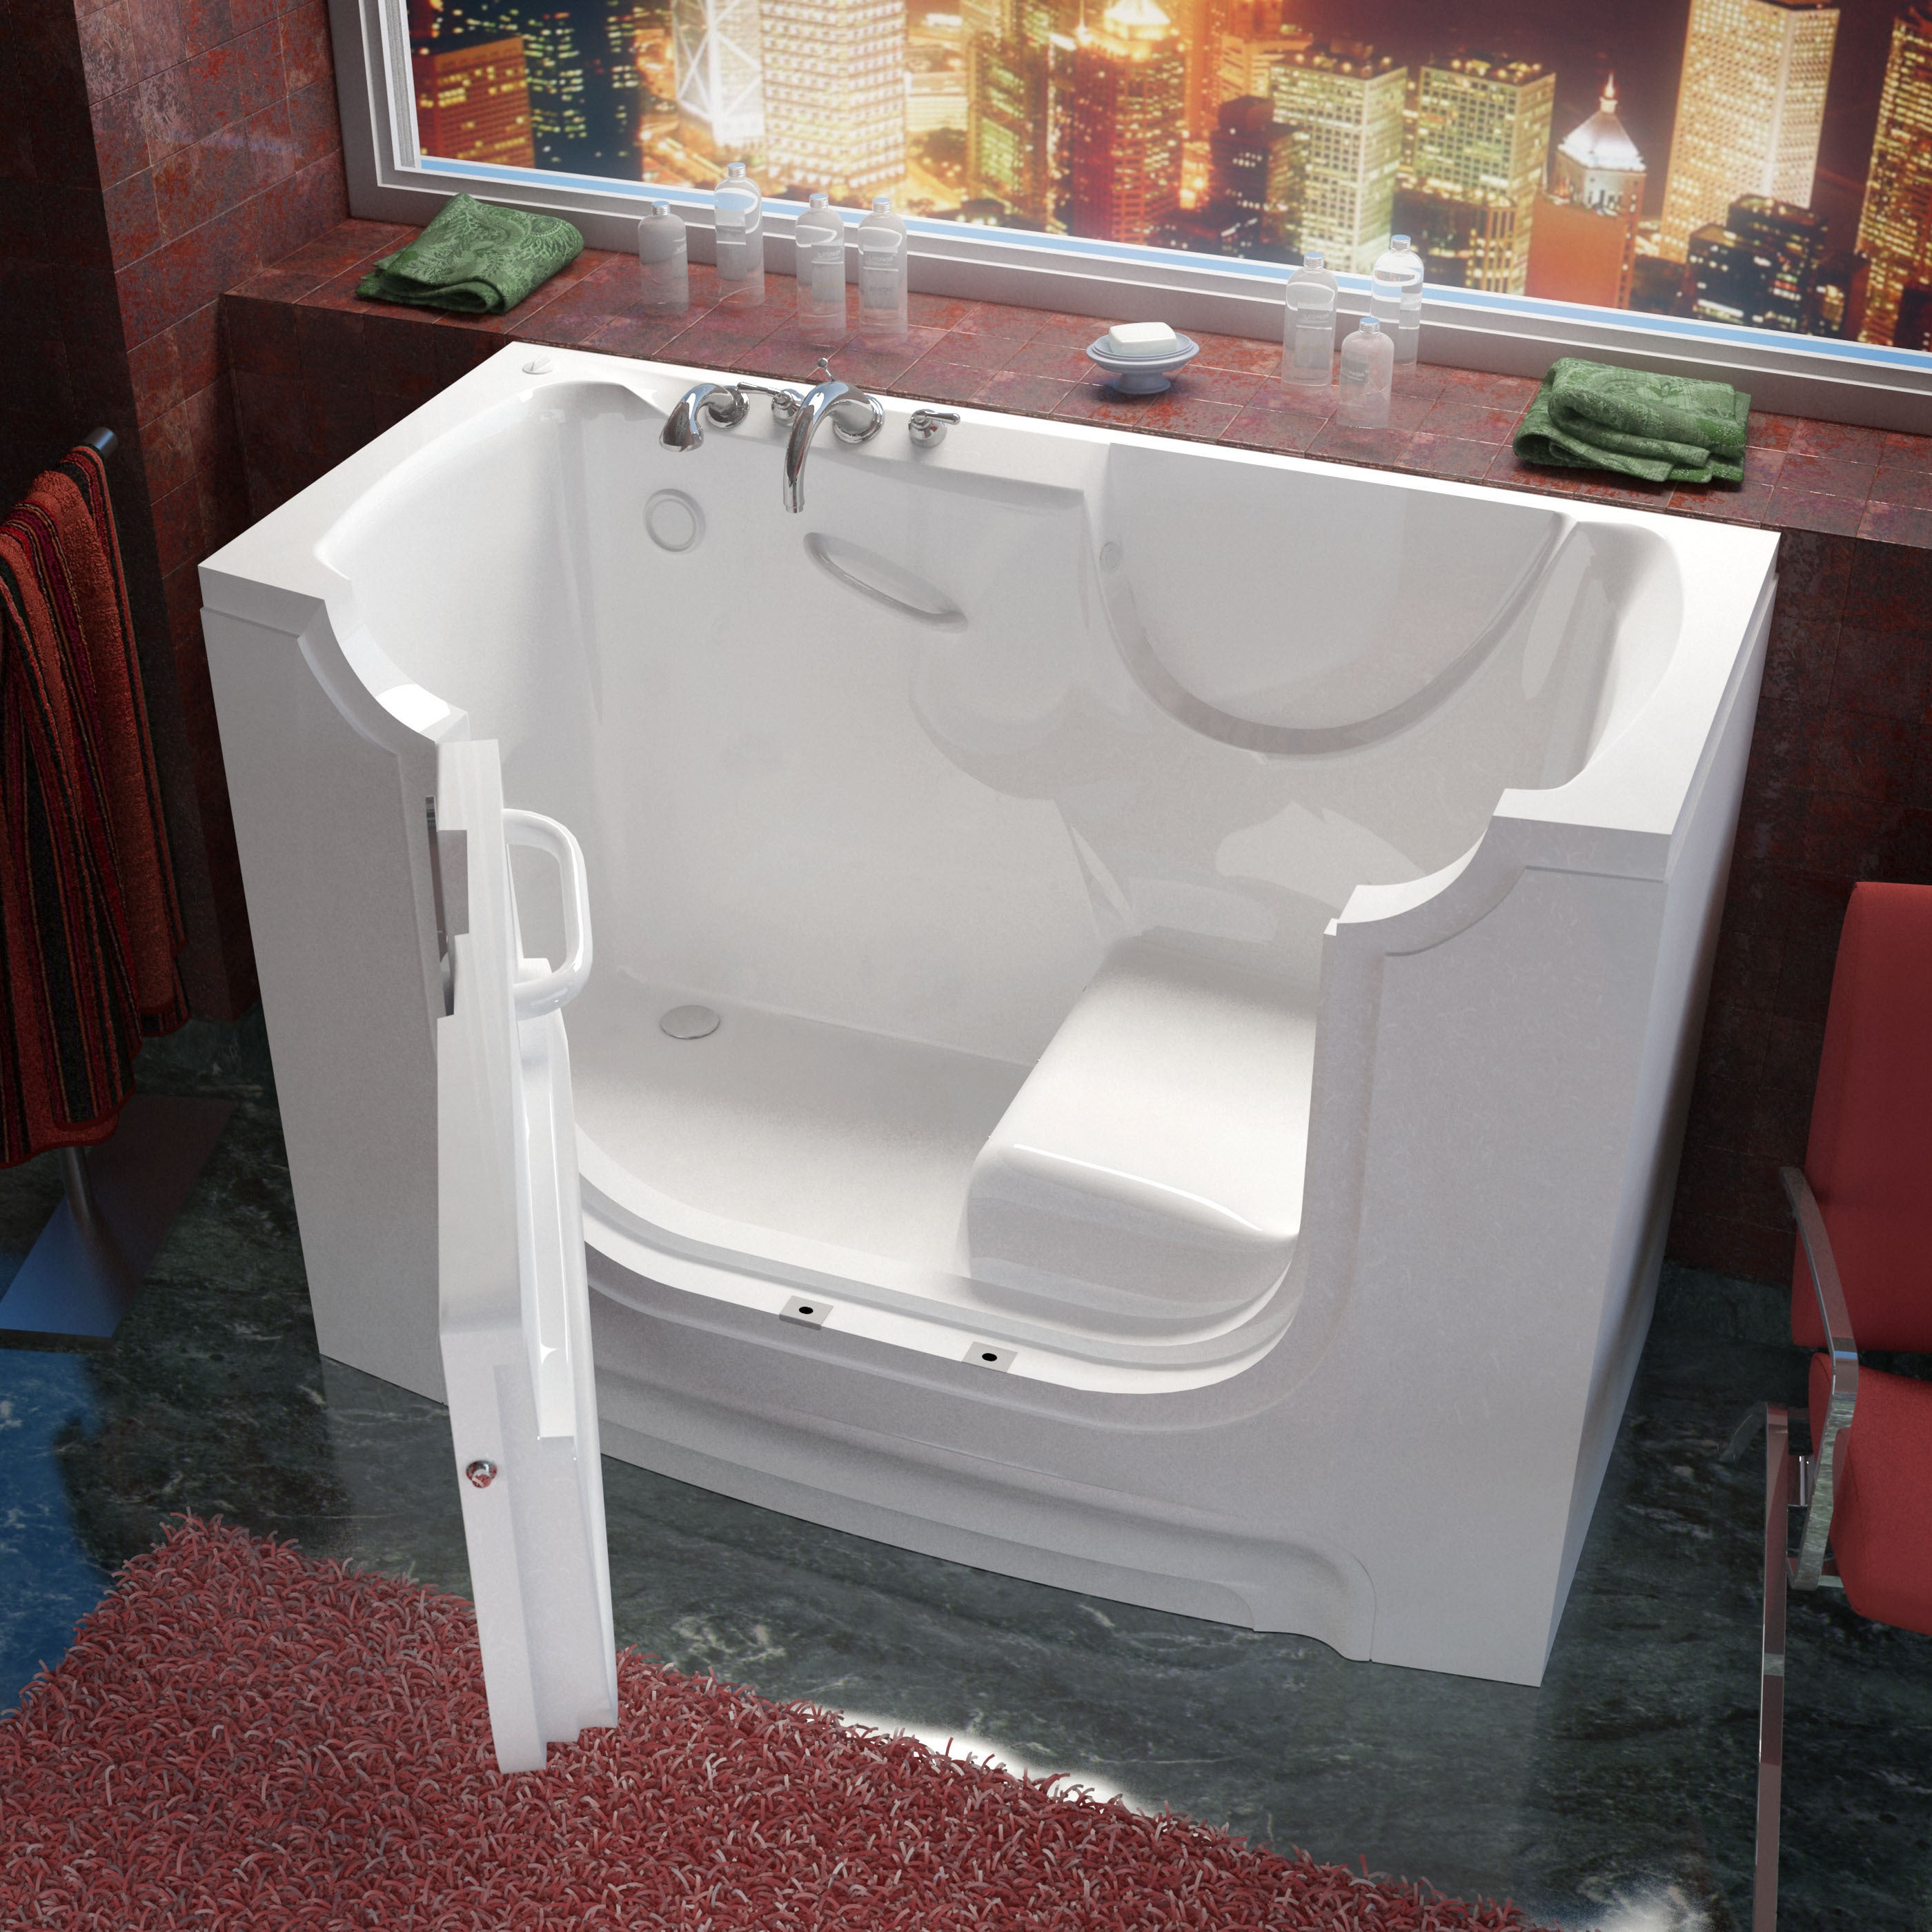 Meditub Wheelchair Accessible 30x60-inch Left Drain White...